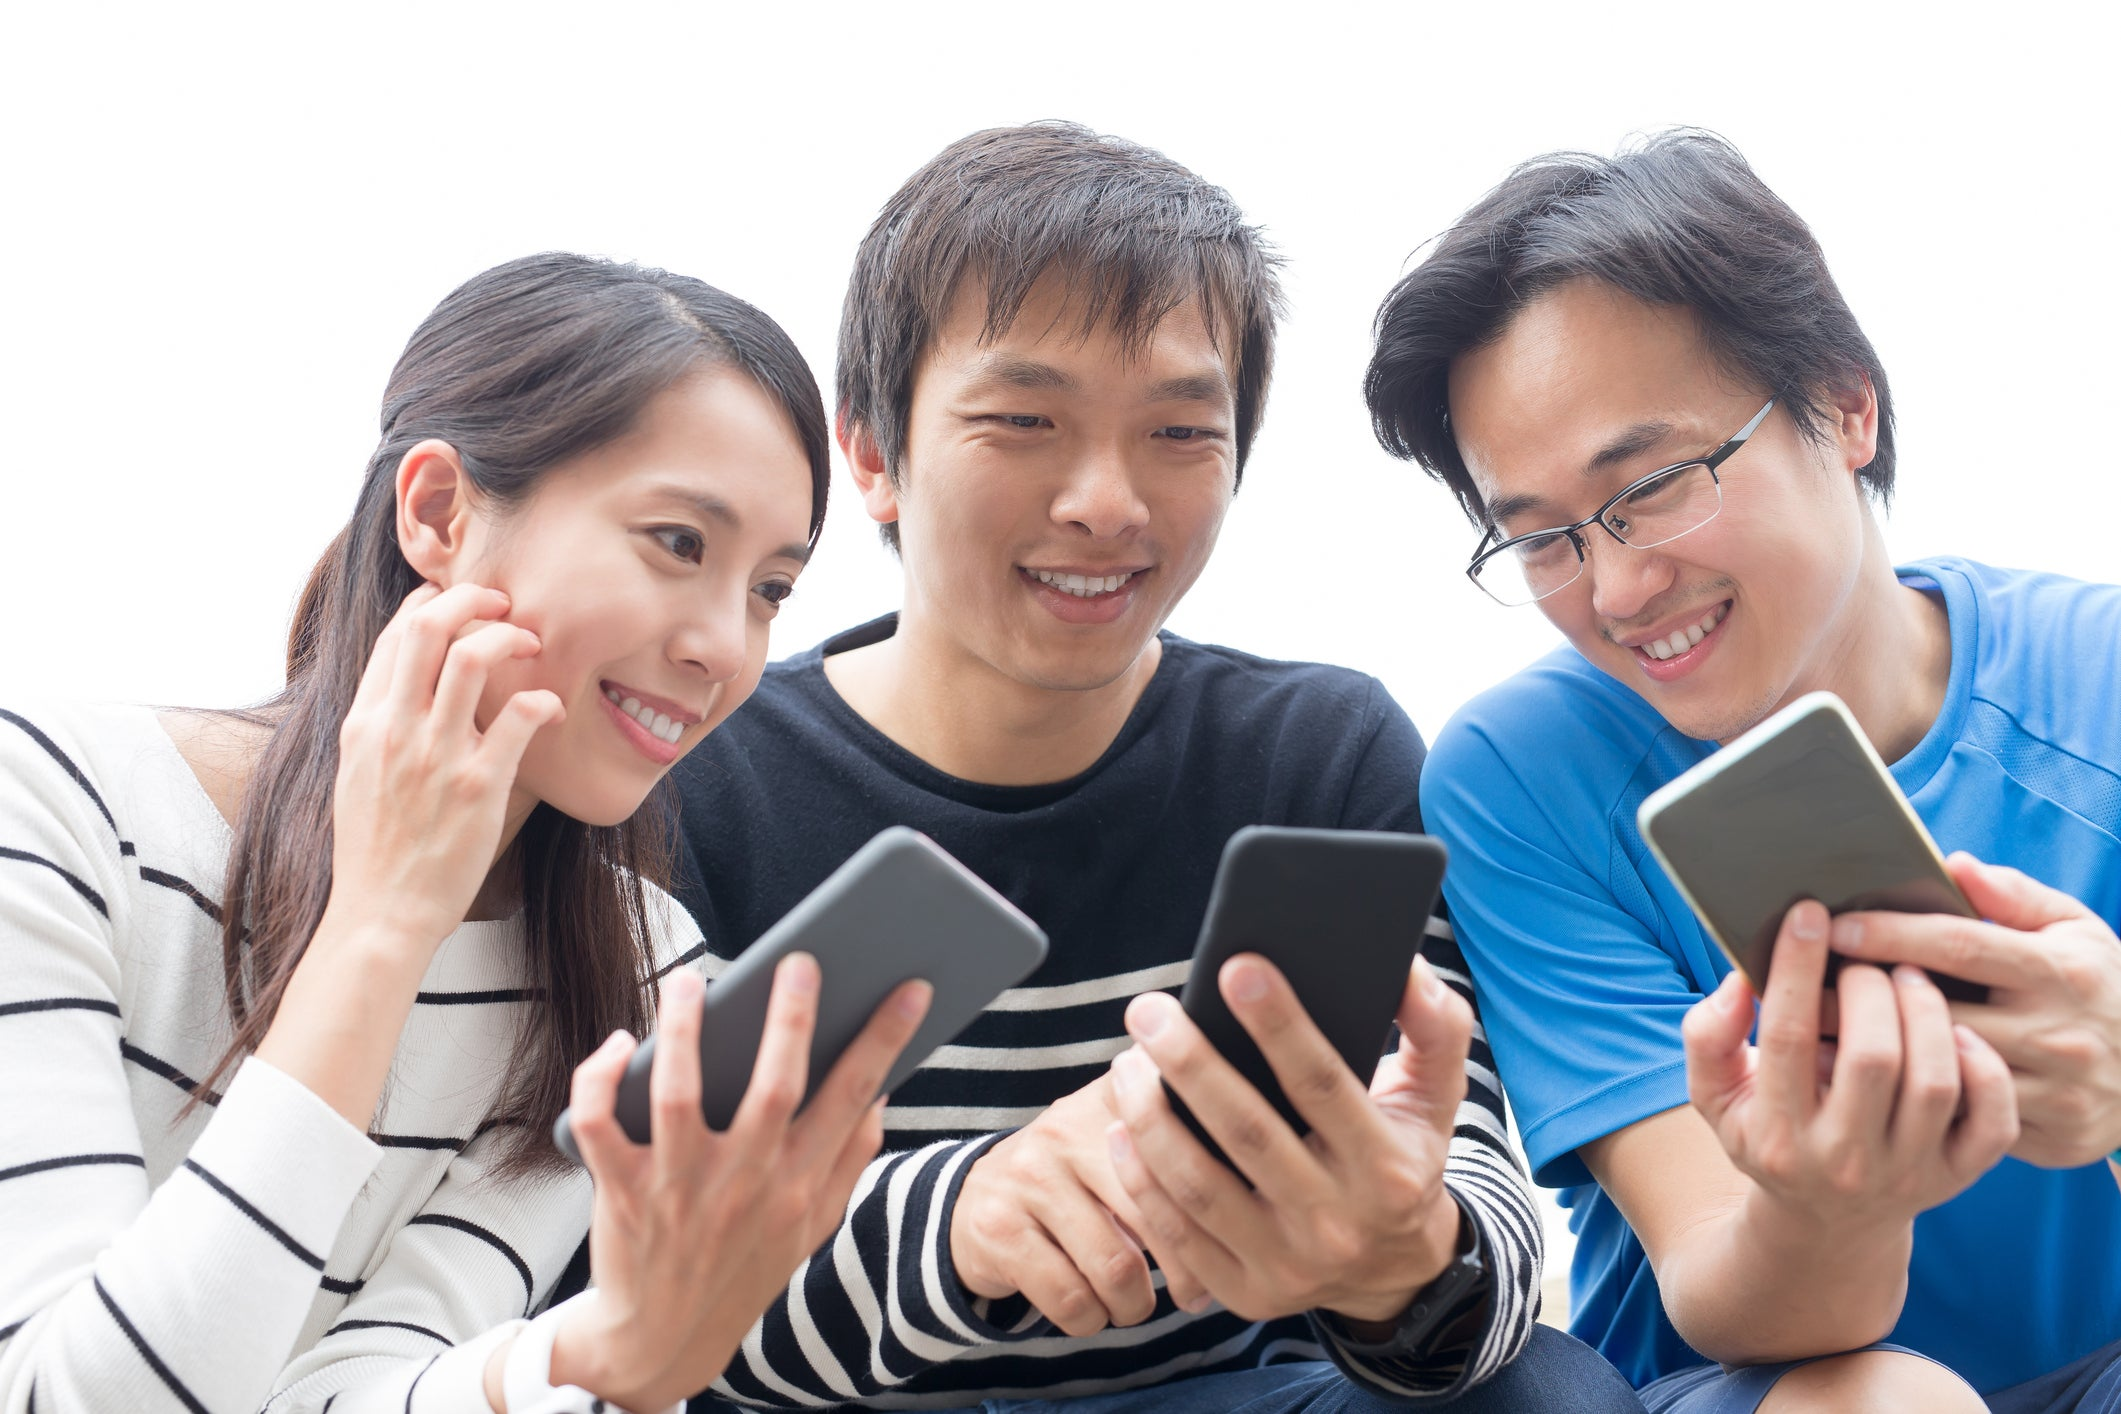 Tencent Growth Rate Declines Due to Economic Weakness in China